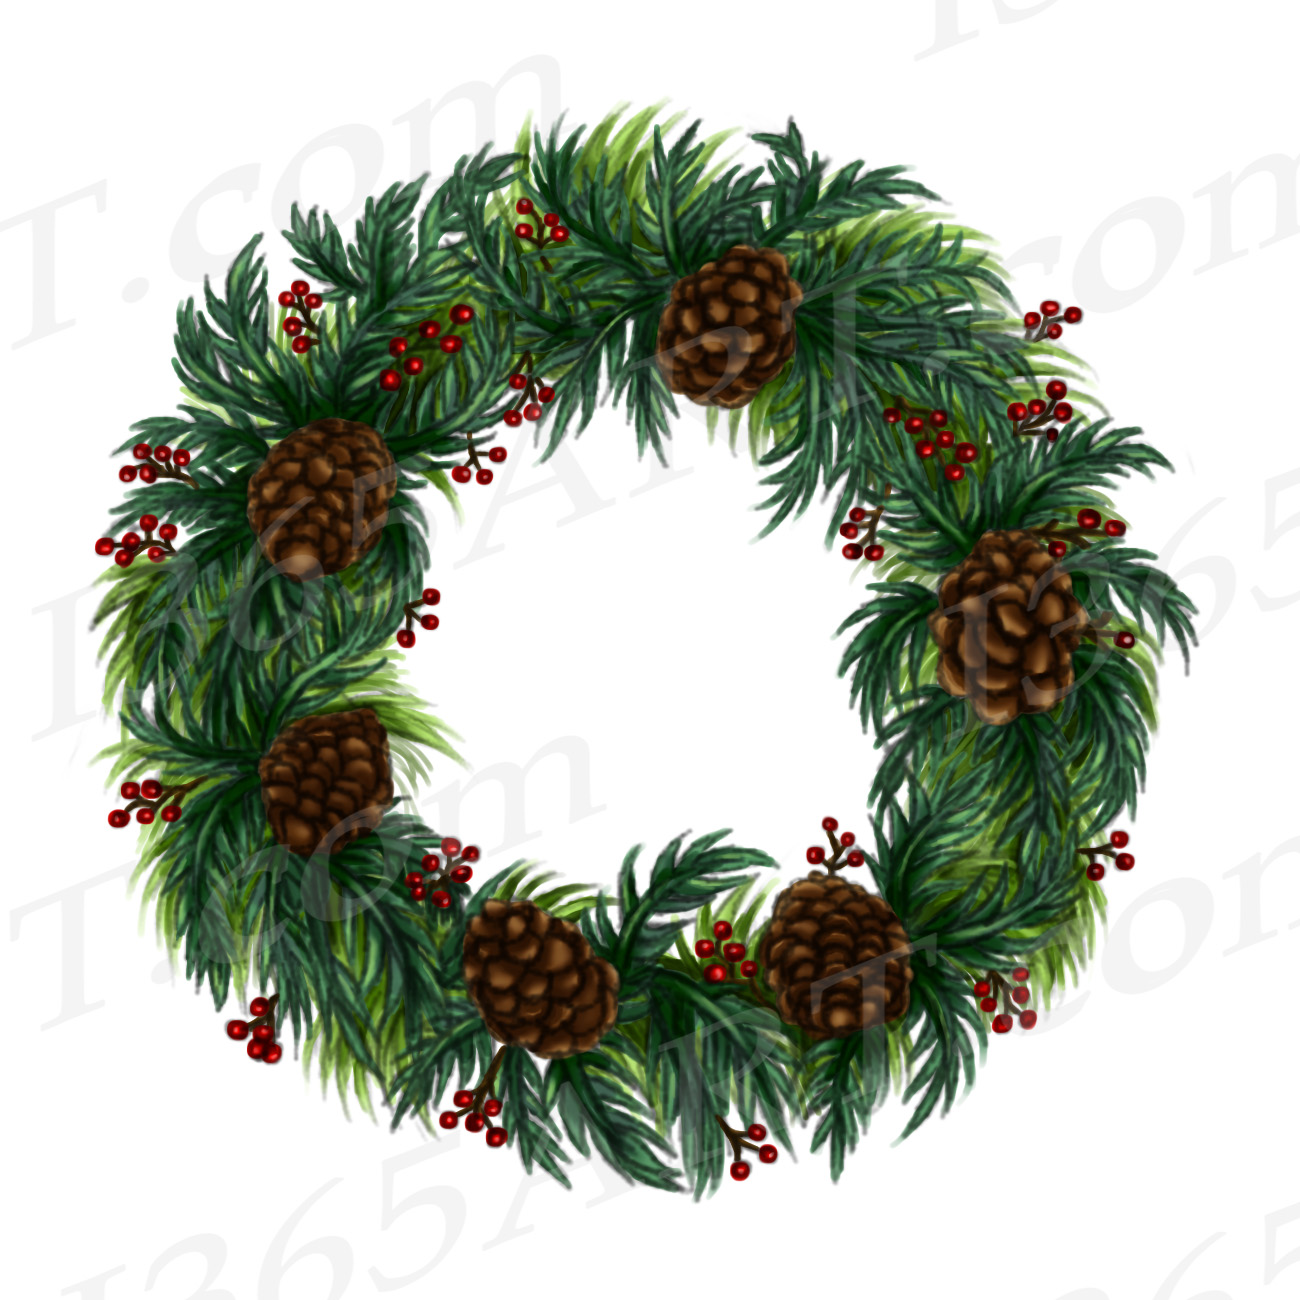 Watercolor Christmas Wreath Png.Winter Wreath Clipart Watercolor Wreath Clip Art Png